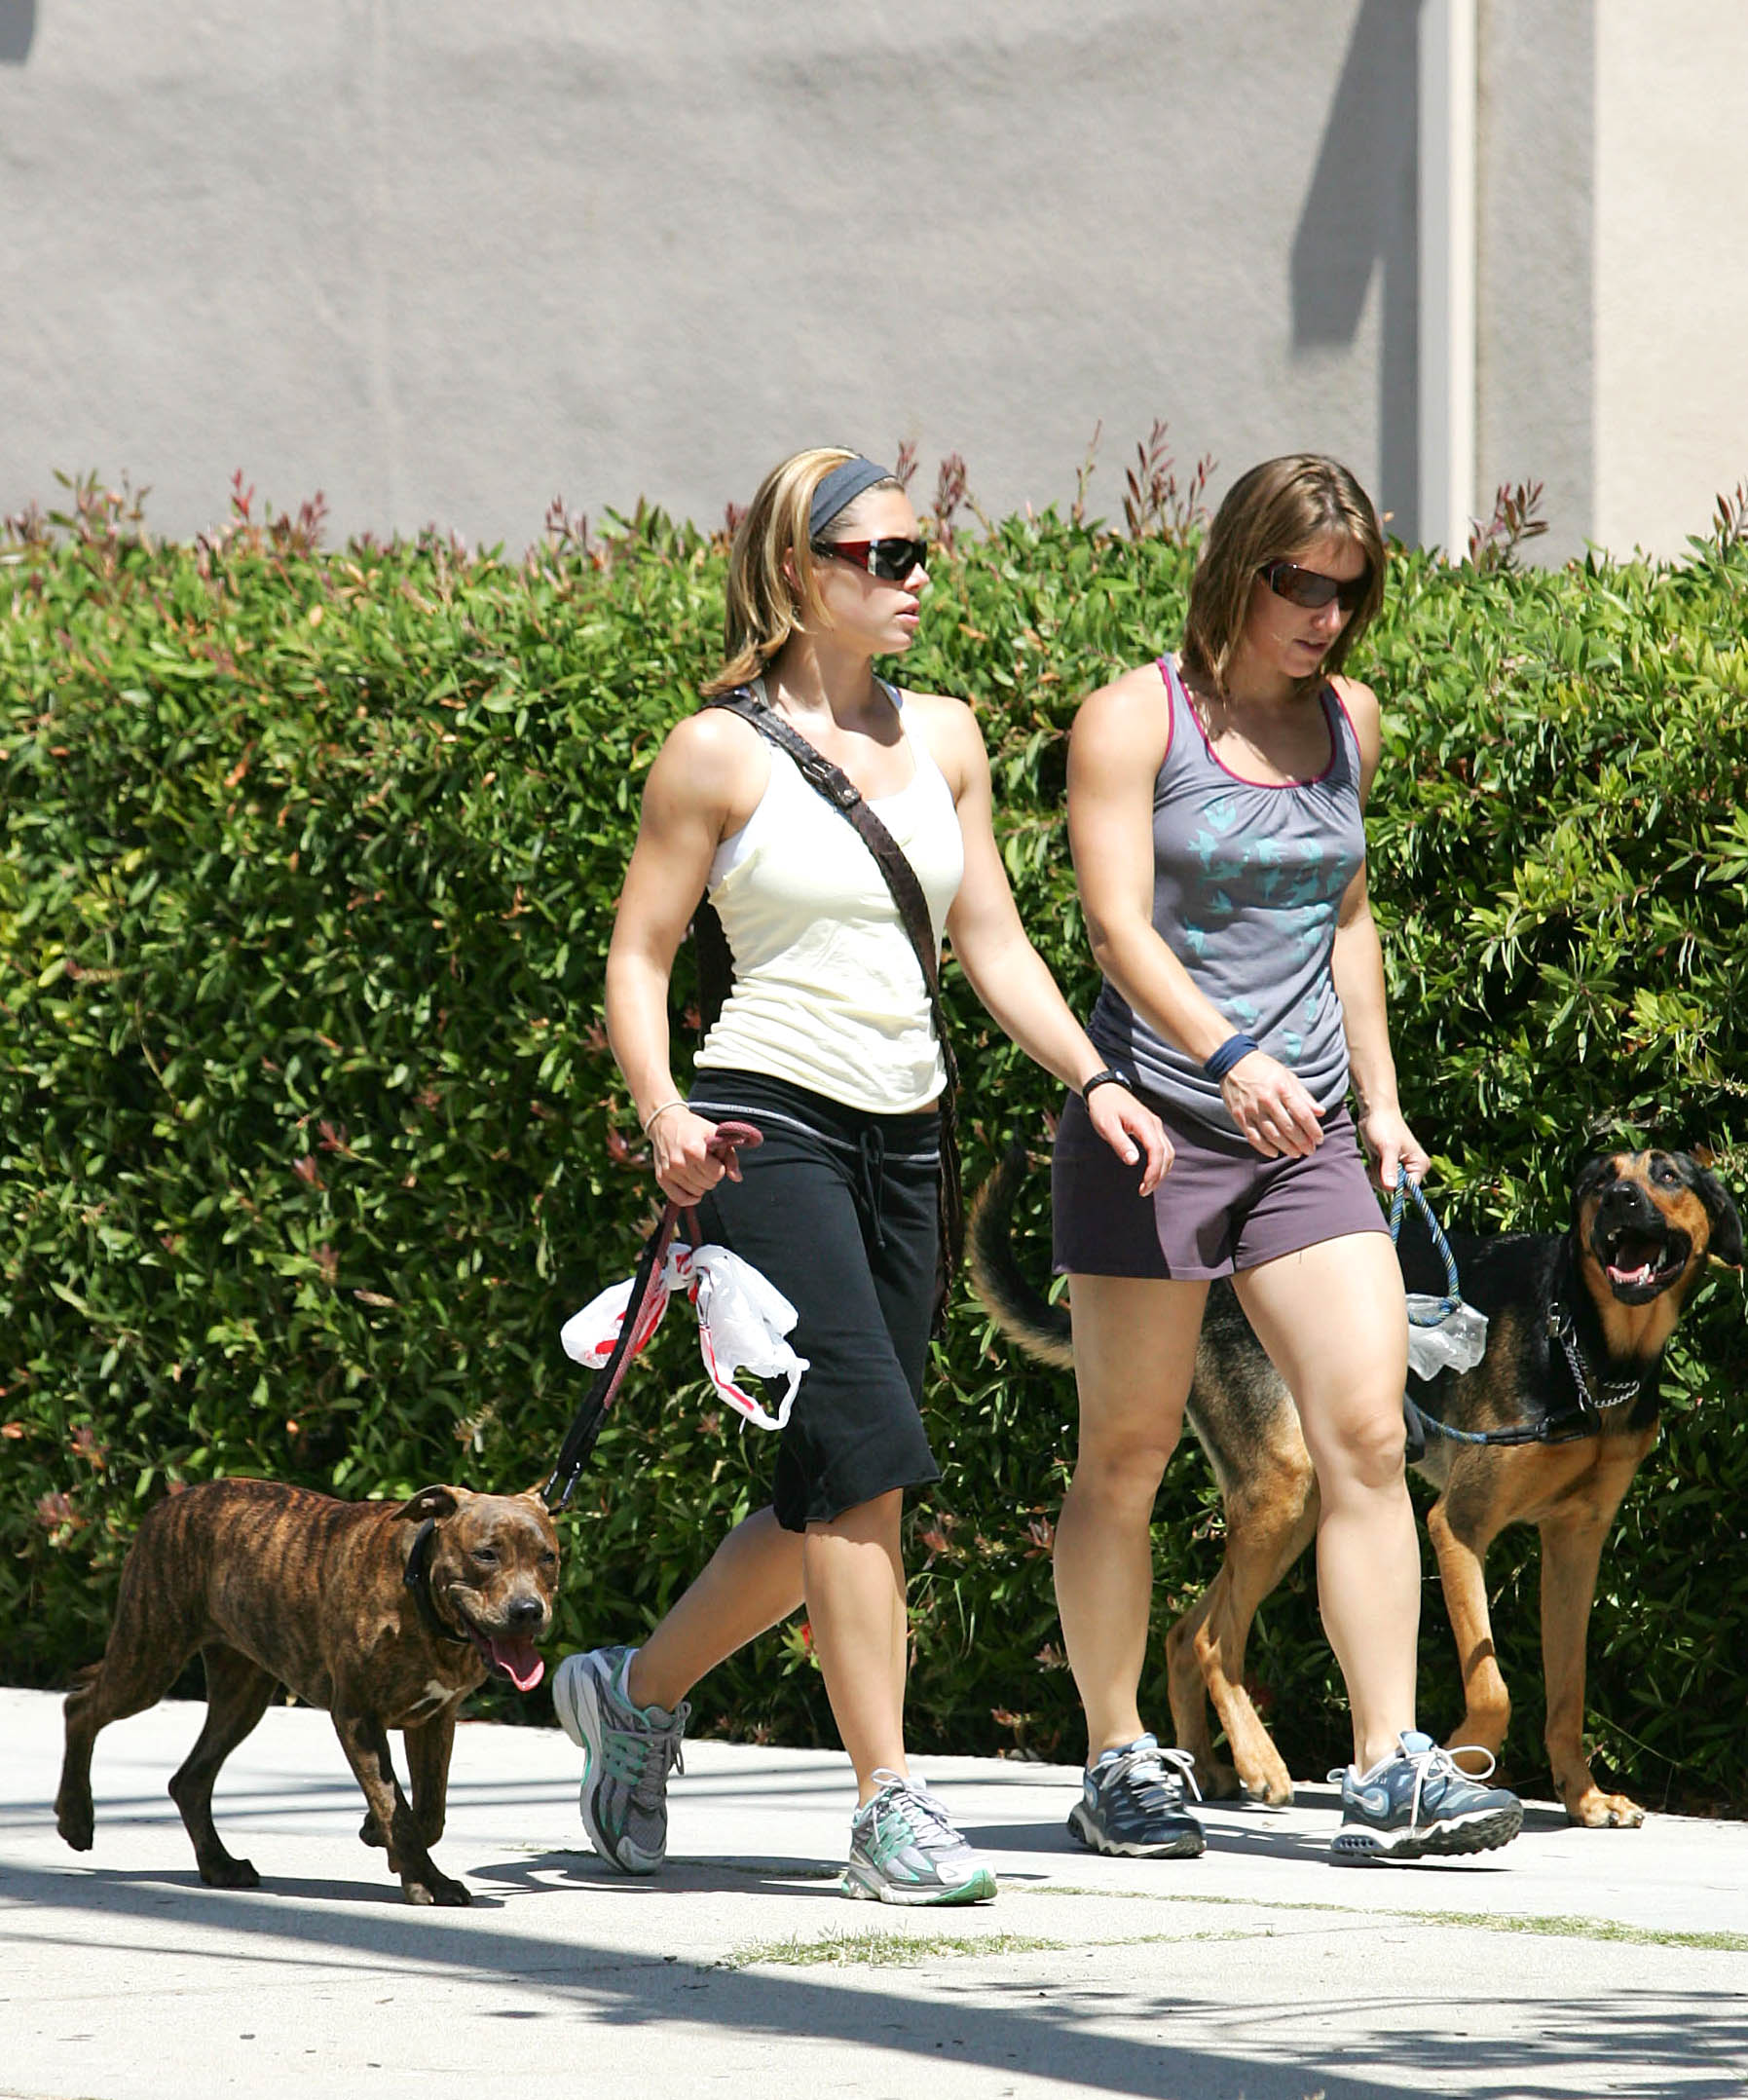 85107_Jessica_Biel_and_a_friend_walk_their_dogs_together_in_Los_Angeles_07_122_540lo.jpg